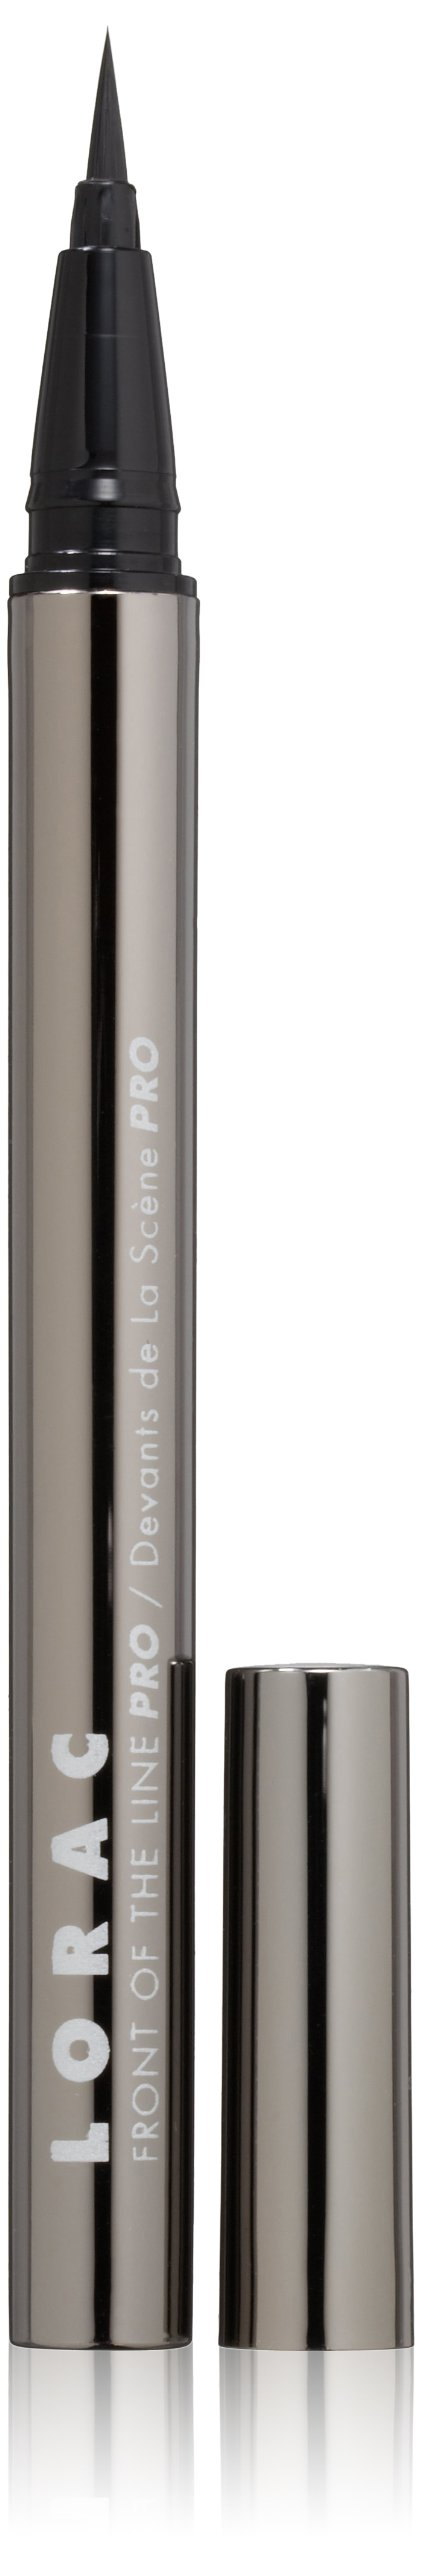 LORAC Front of the Line PRO Liquid Eyeliner